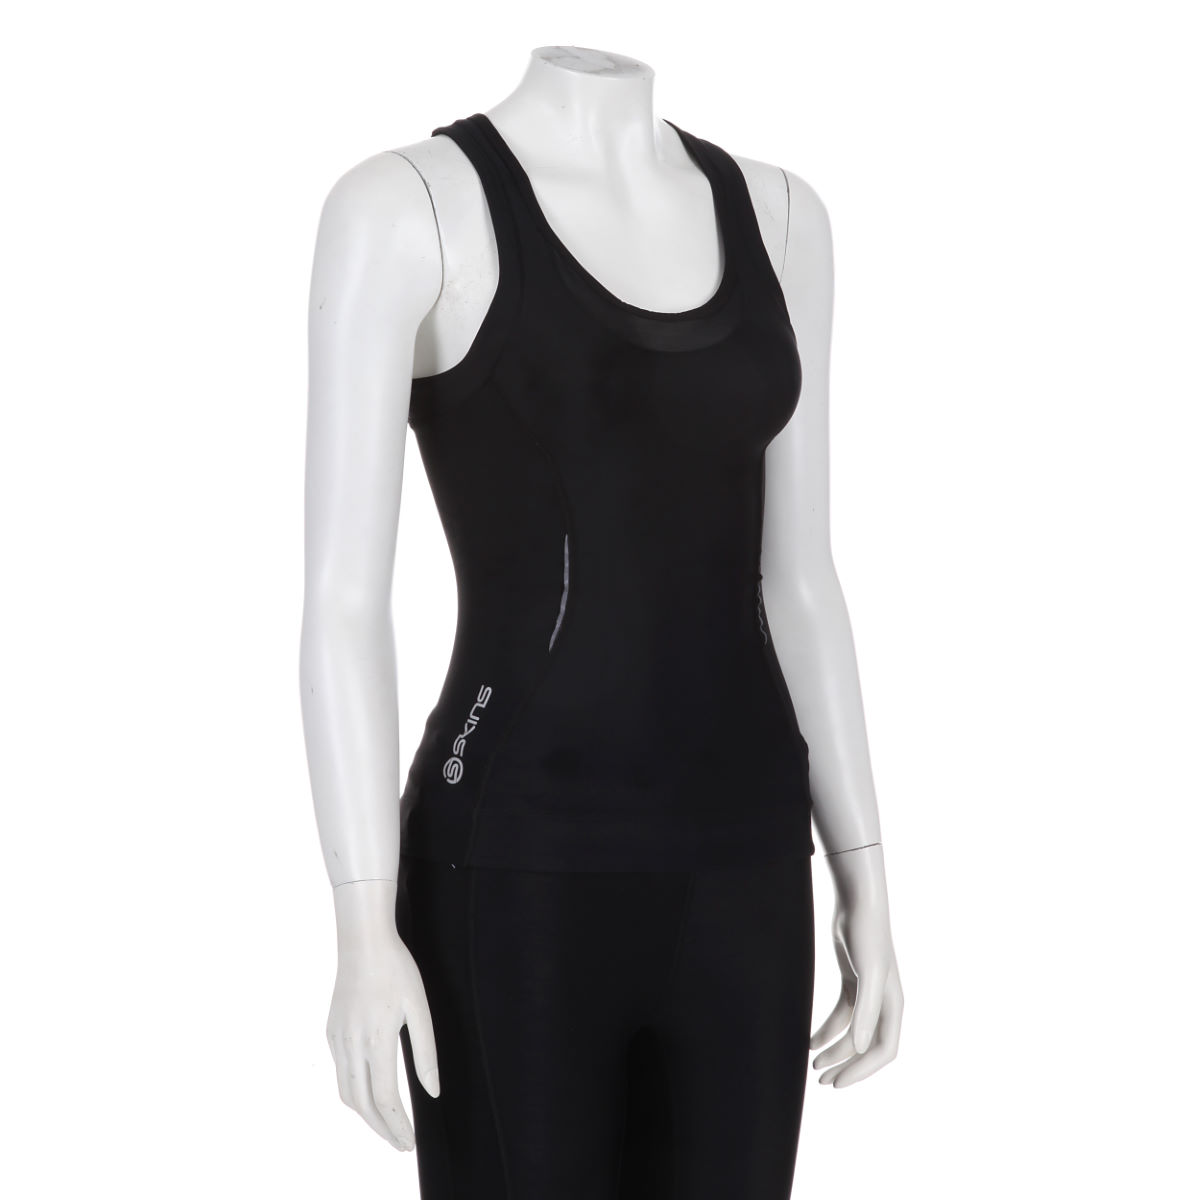 SKINS Womens A200 Racerback Top   Compression Base Layers